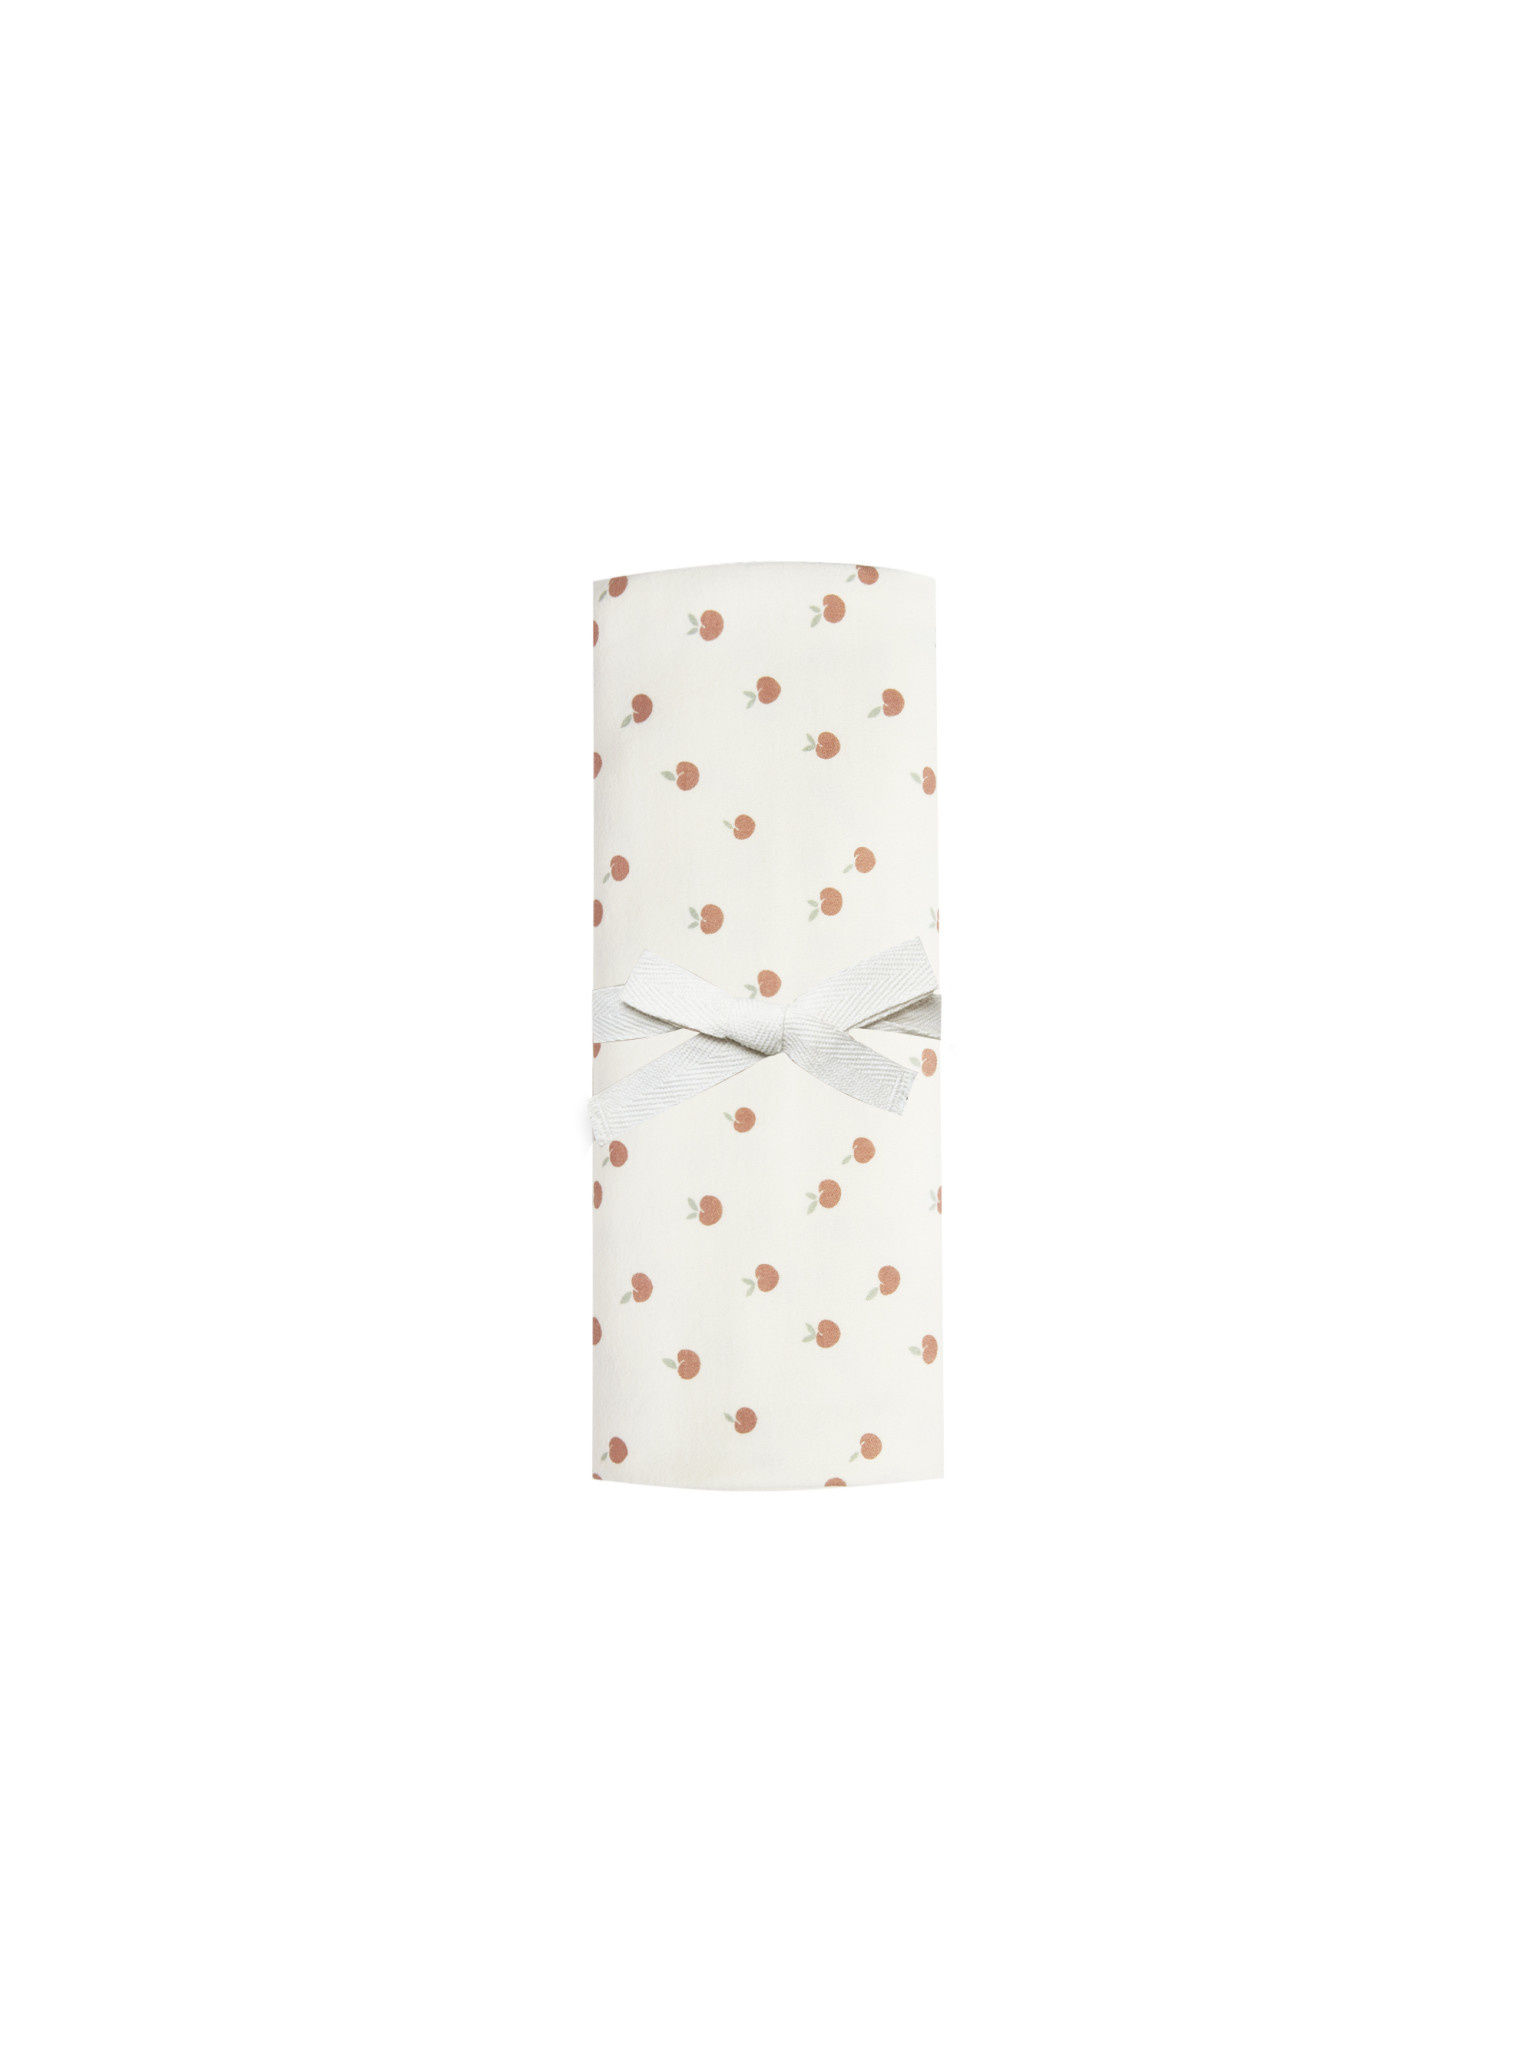 Quincy Mae Swaddle Blanket - Apples